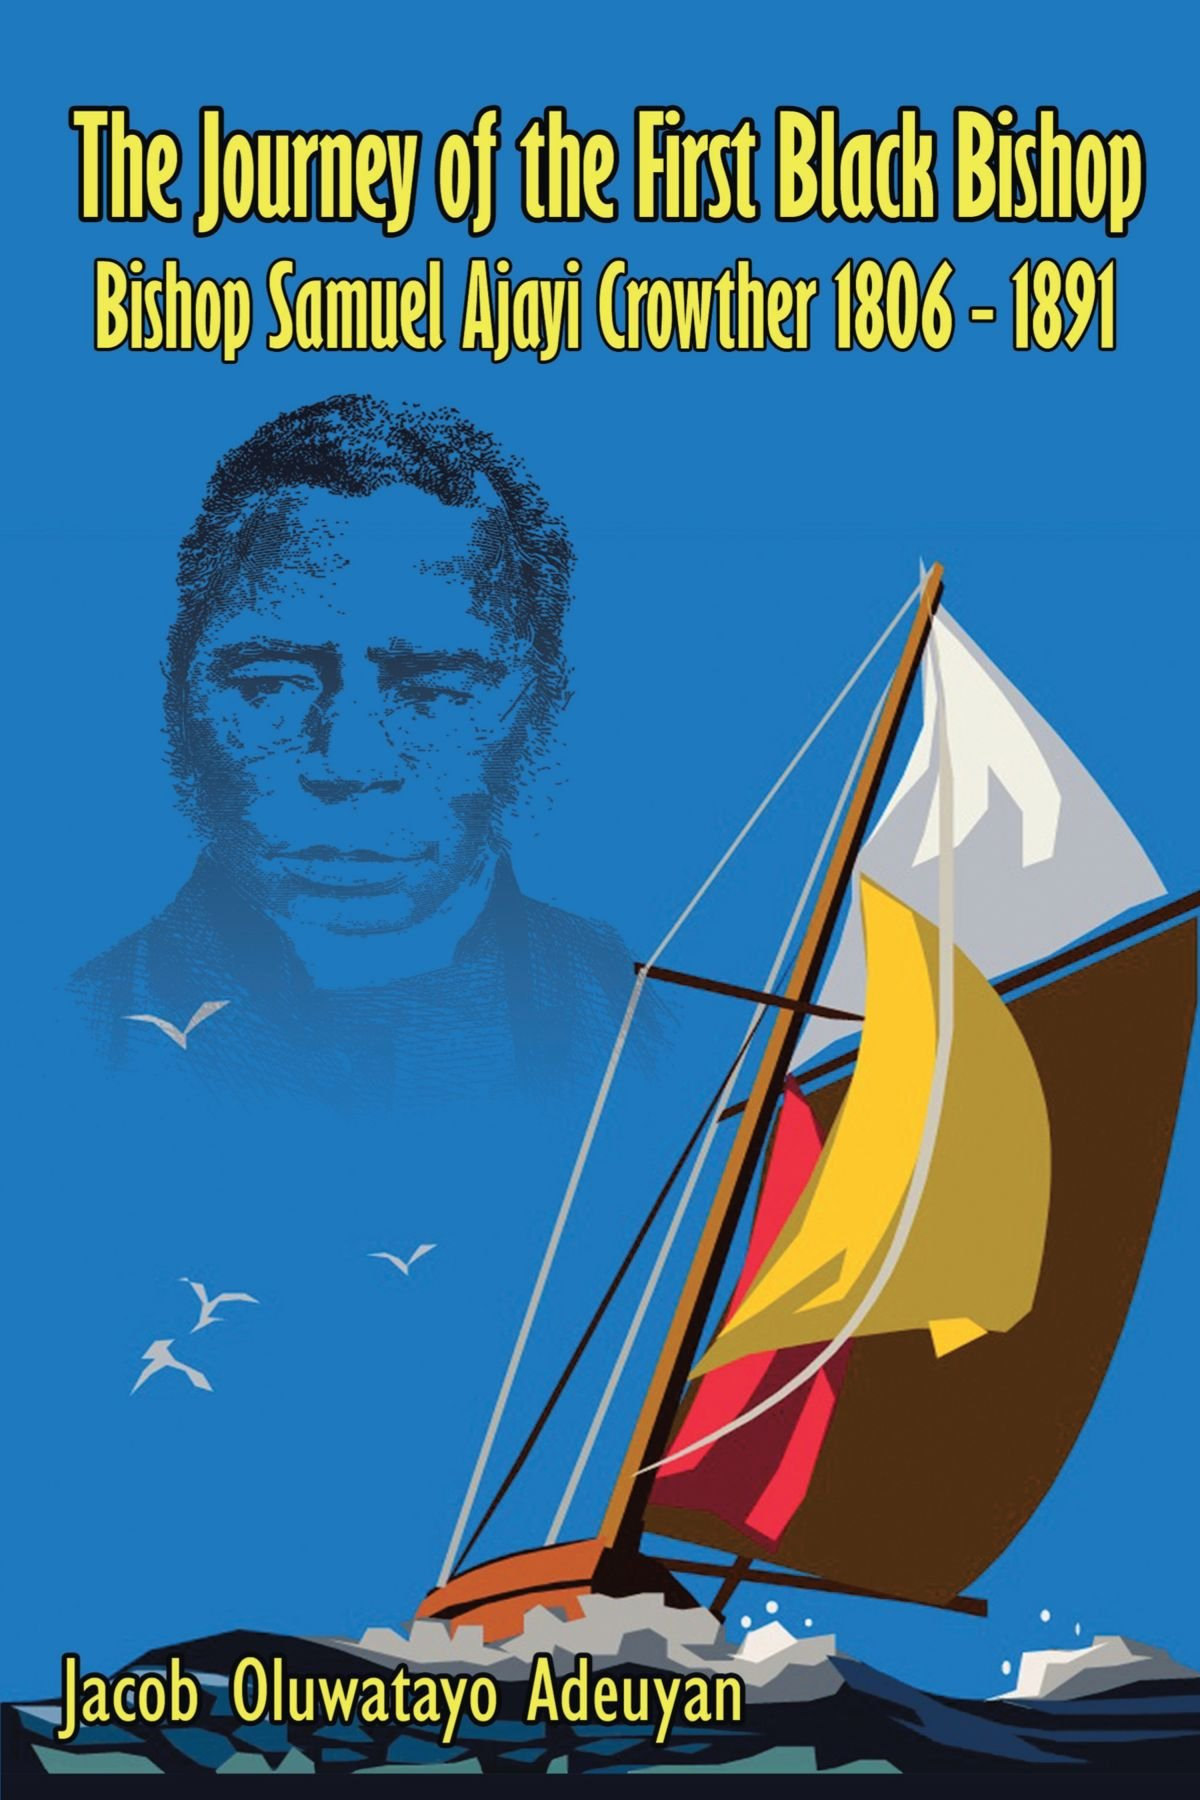 The Journey of the First Black Bishop: Bishop Samuel Ajayi Crowther 1806-1891 PDF